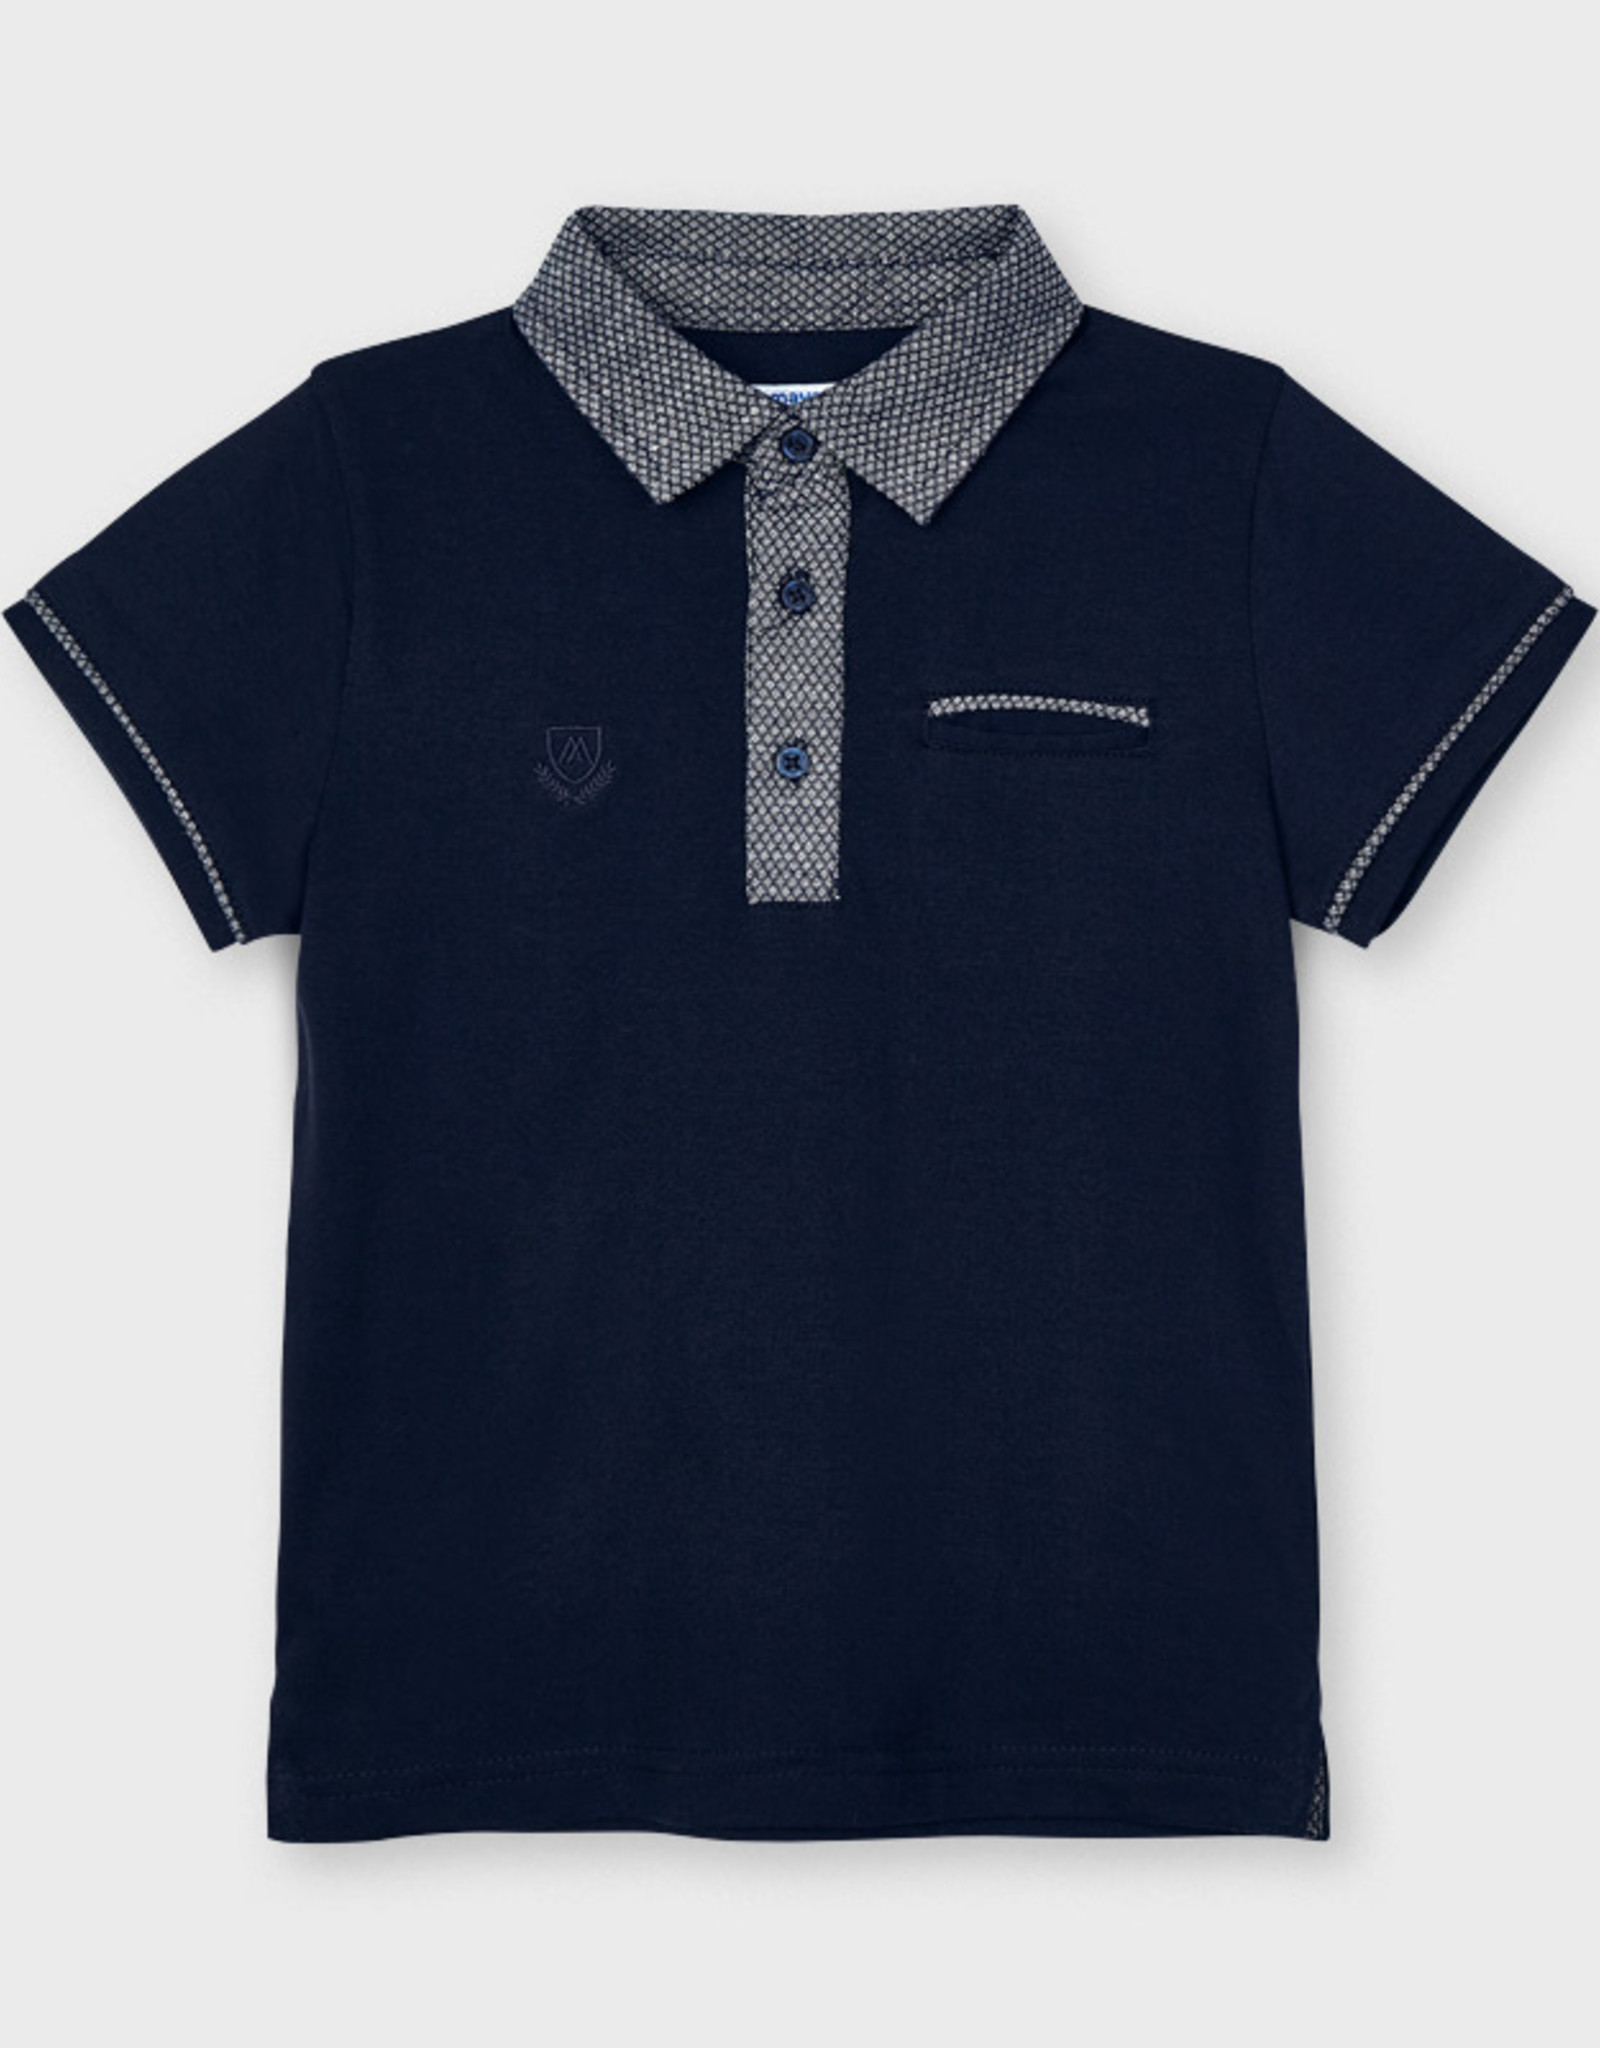 Mayoral SP21 B Navy Polo T-Shirt